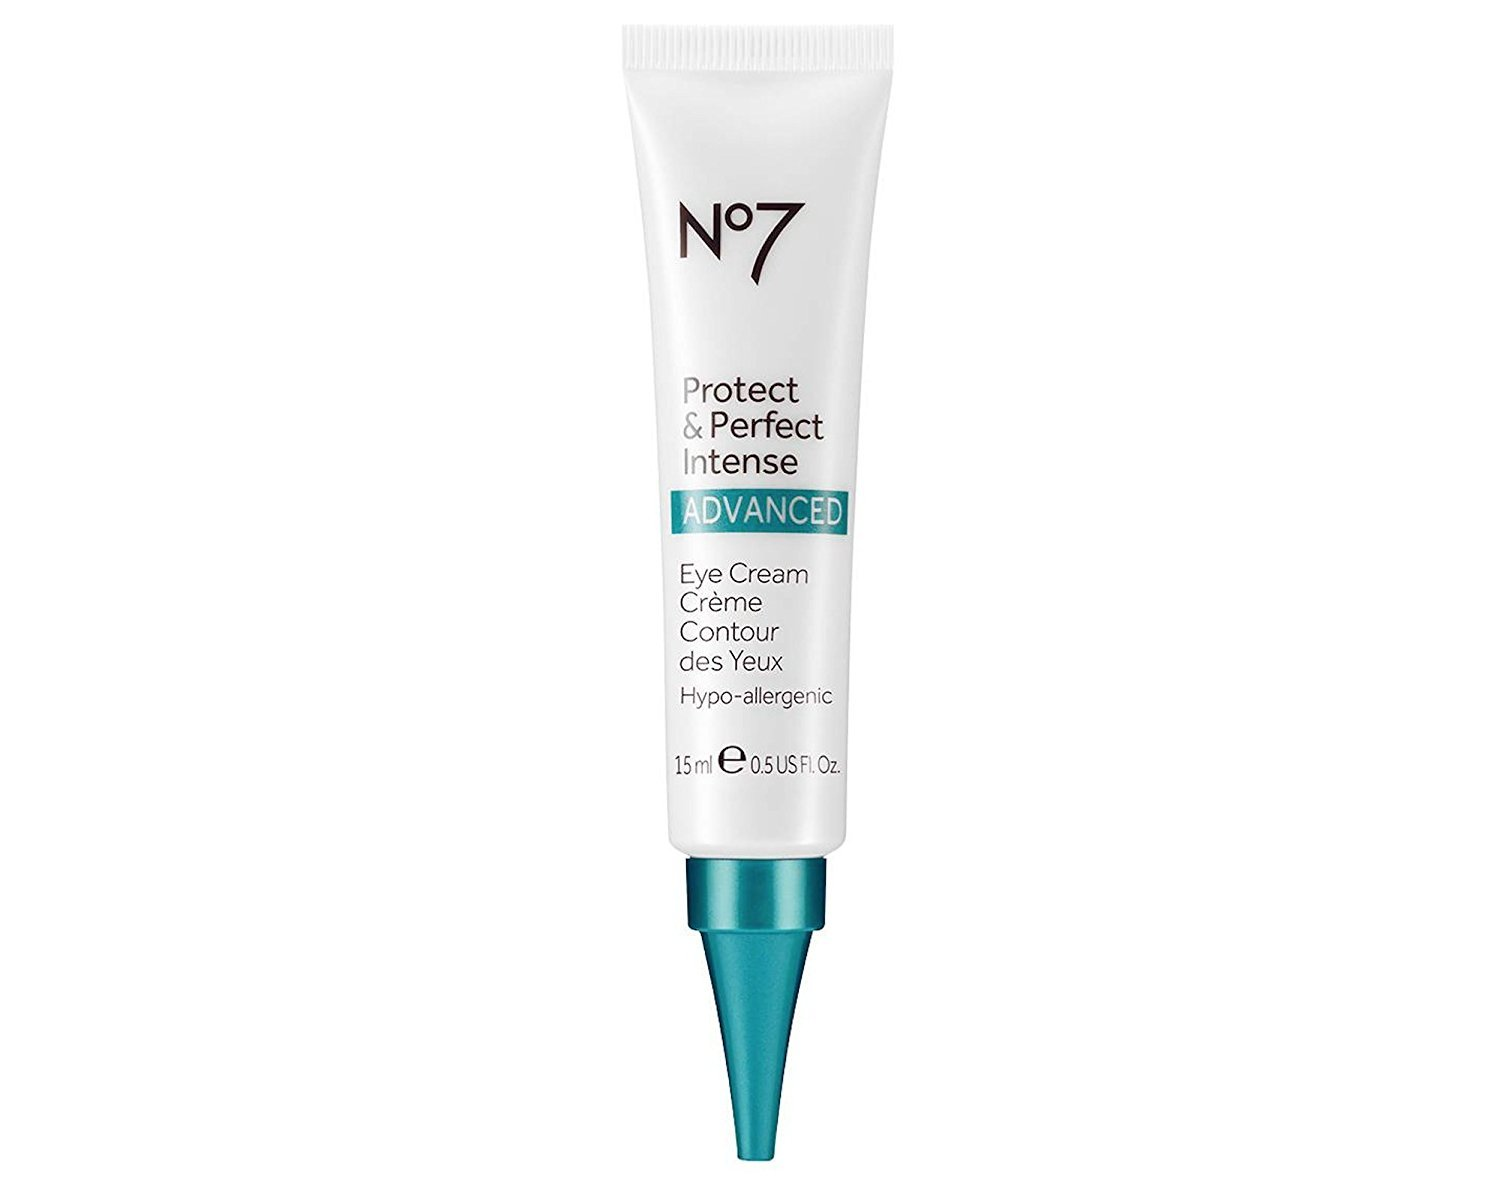 Boots No 7 Protect & Perfect Intense Advanced Eye Cream - 15 ml by Boots